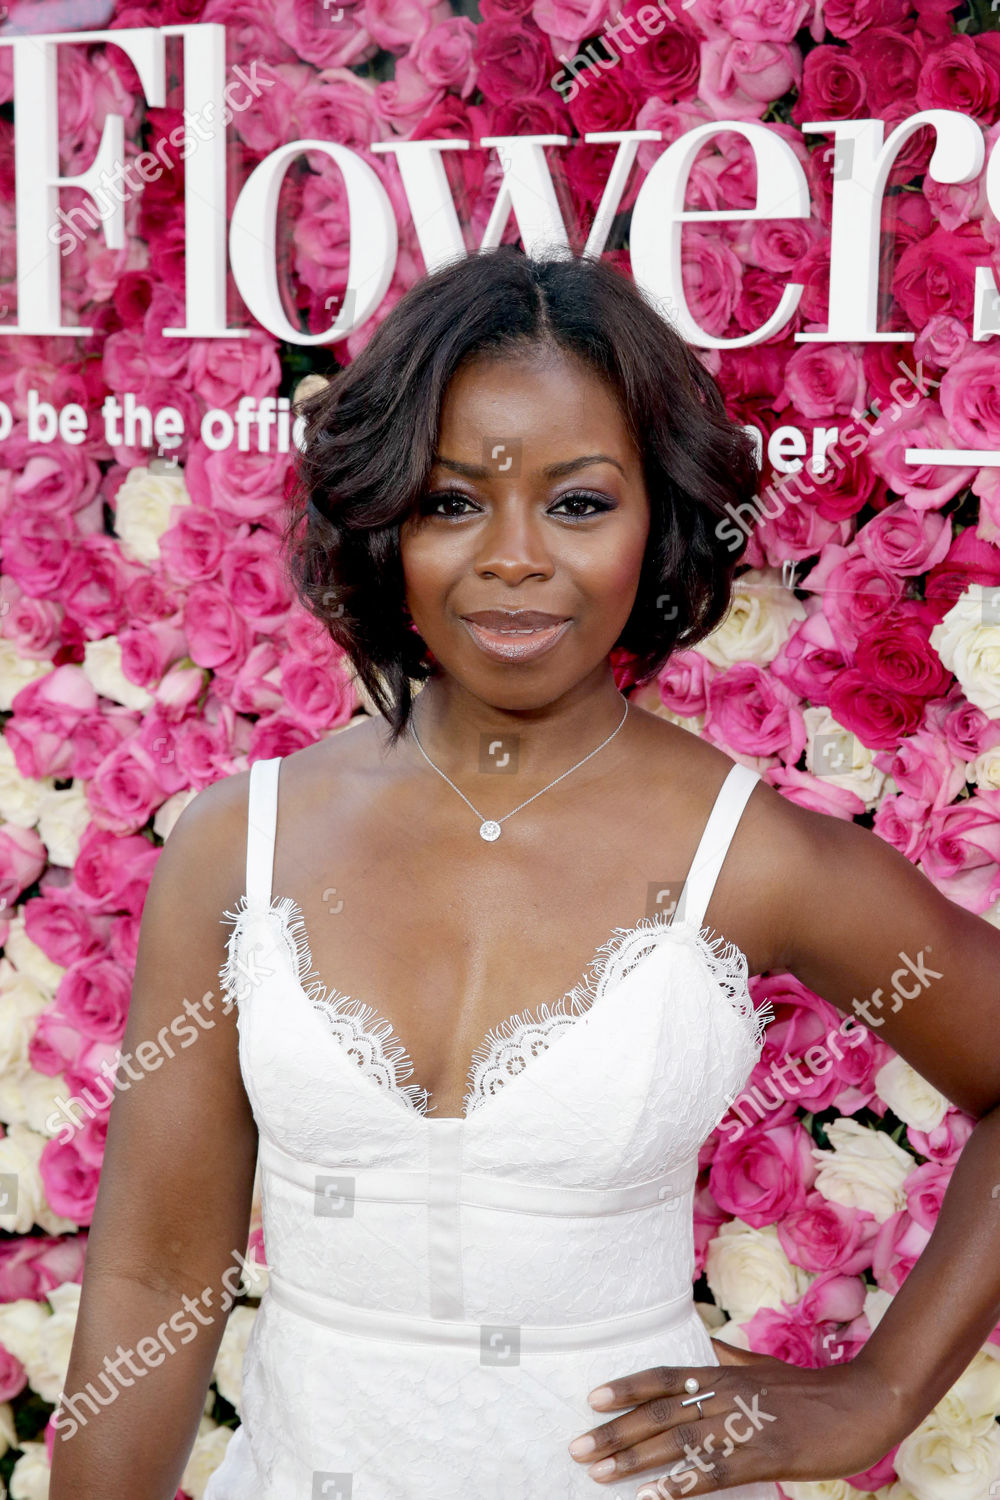 Erica Tazel Seen Open Road Presents World Editorial Stock Photo Stock Image Shutterstock Erica tazel is a voice actor in mafia iii. https www shutterstock com editorial image editorial open road presents the world premiere of mothers day hollywood usa 9059317cu